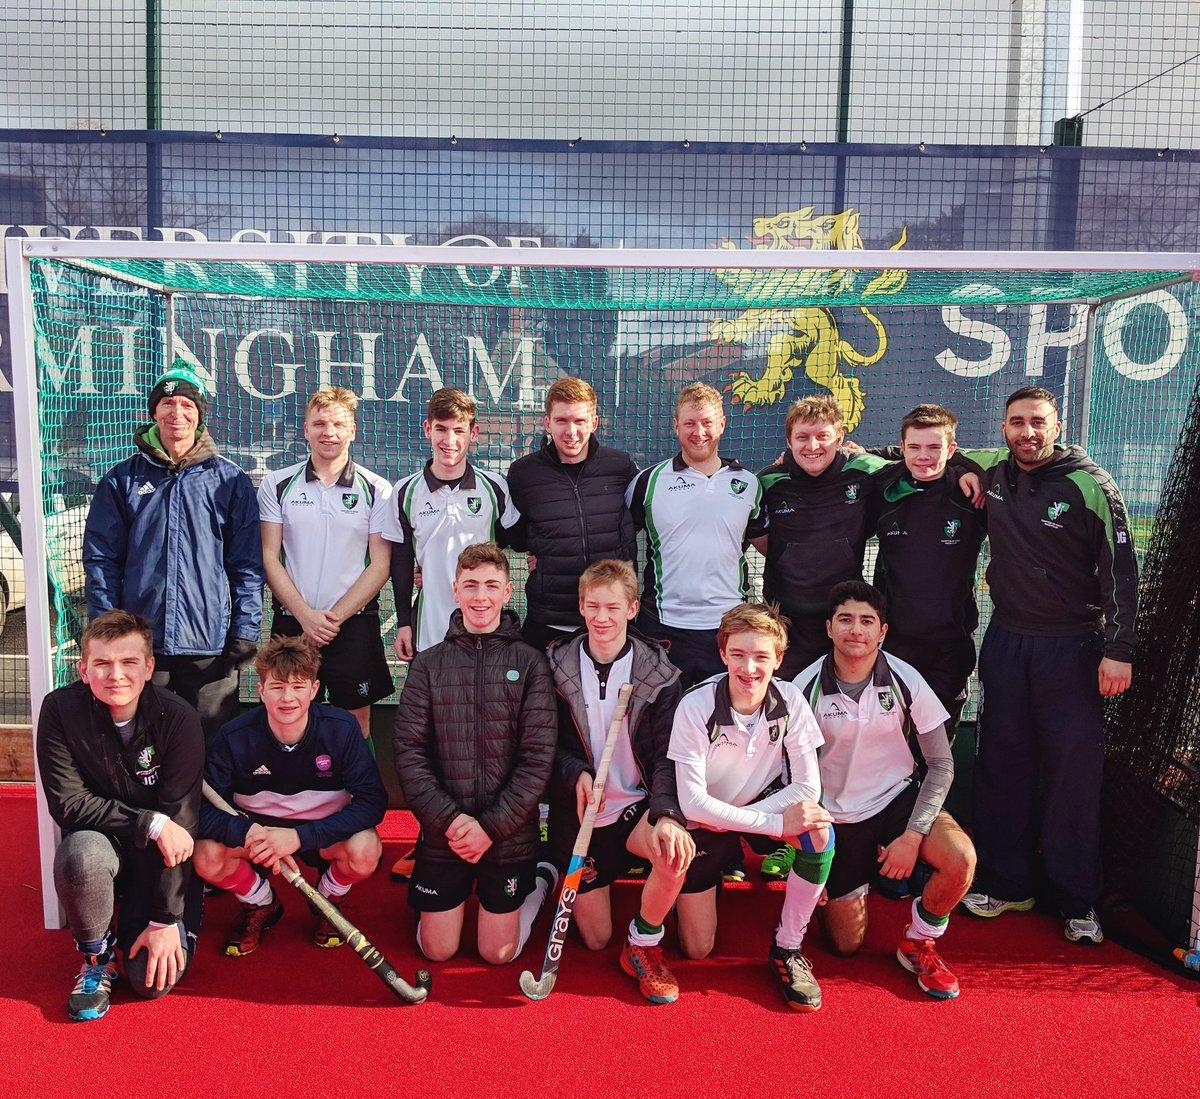 Proud day for the club. Seven under-18s in our Men's 1st XI squad that eventually lost out 3-1 to @UOBHC1 in the cup. Great effort from all! 💪🏼  #WeAreHampton 💚🖤💚